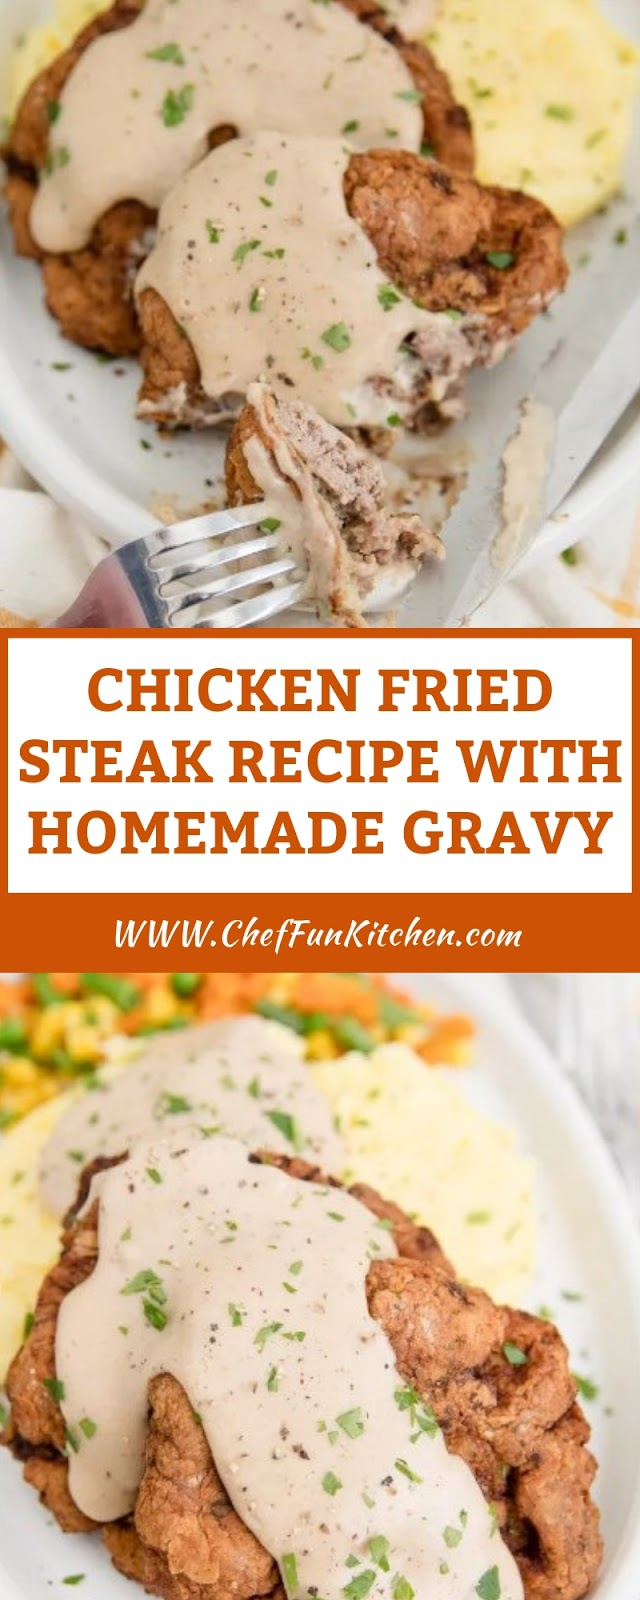 CHICKEN FRIED STEAK RECIPE WITH HOMEMADE GRAVY